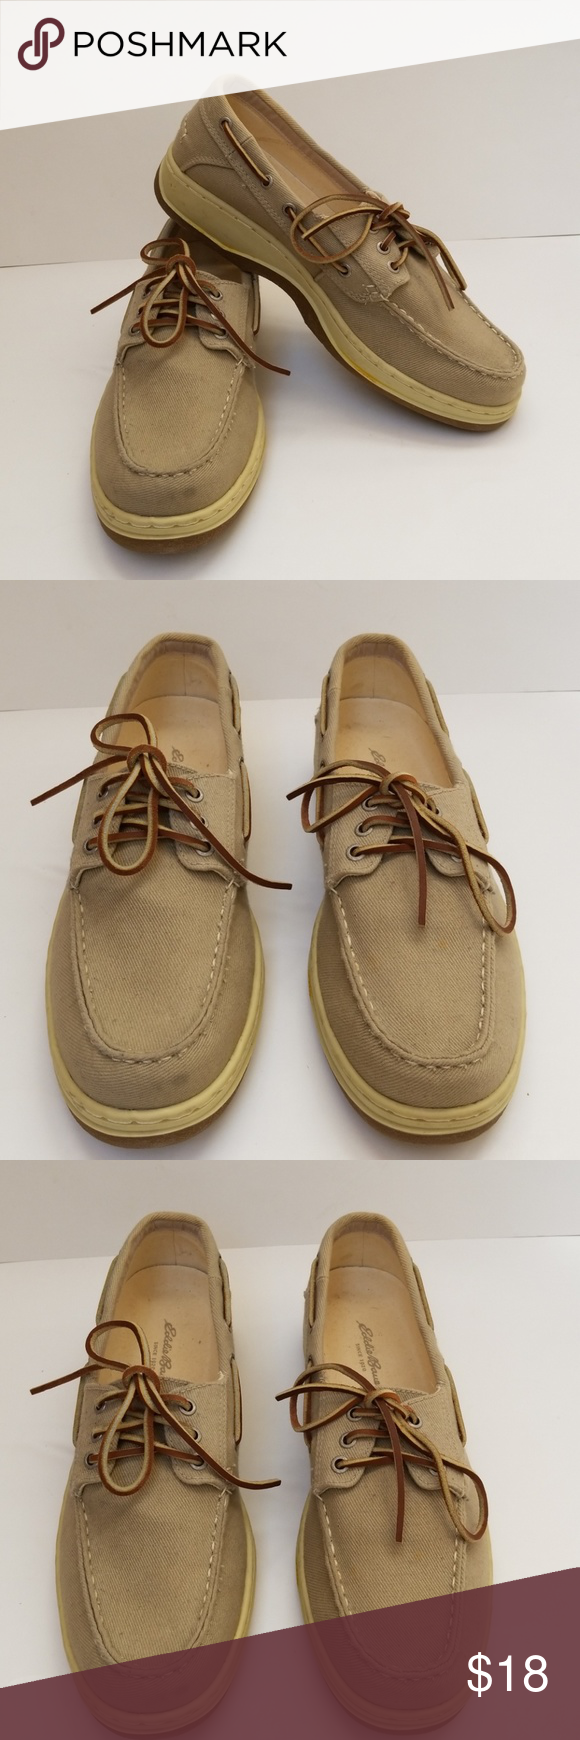 Eddie Bauer Boat Shoes Sneakers fashion, Sneakers